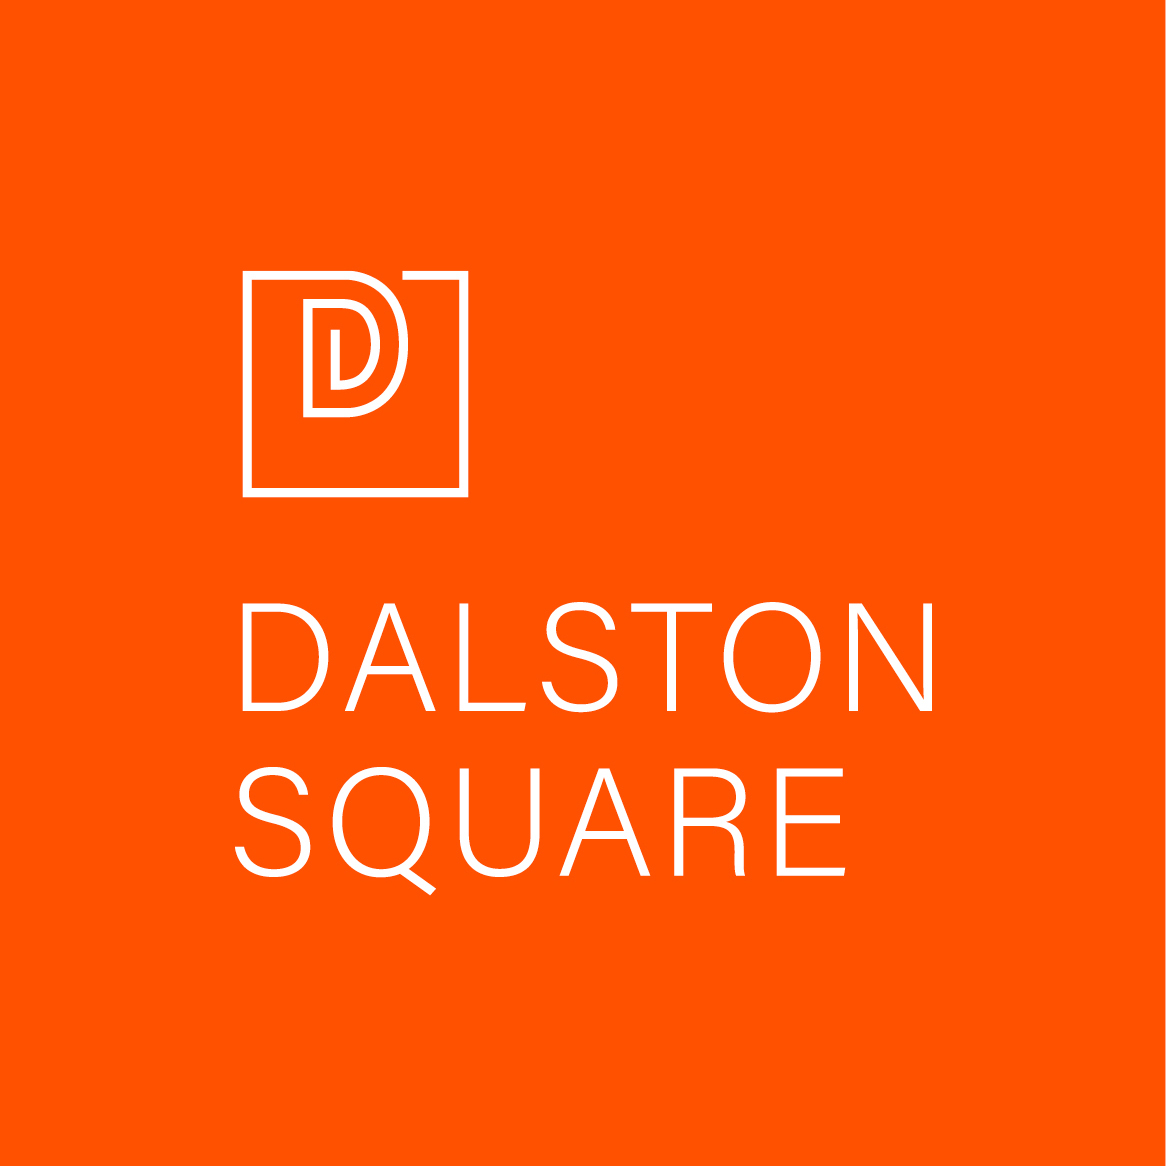 dalston-square-logo-by-ALSO-agency-00.jpg